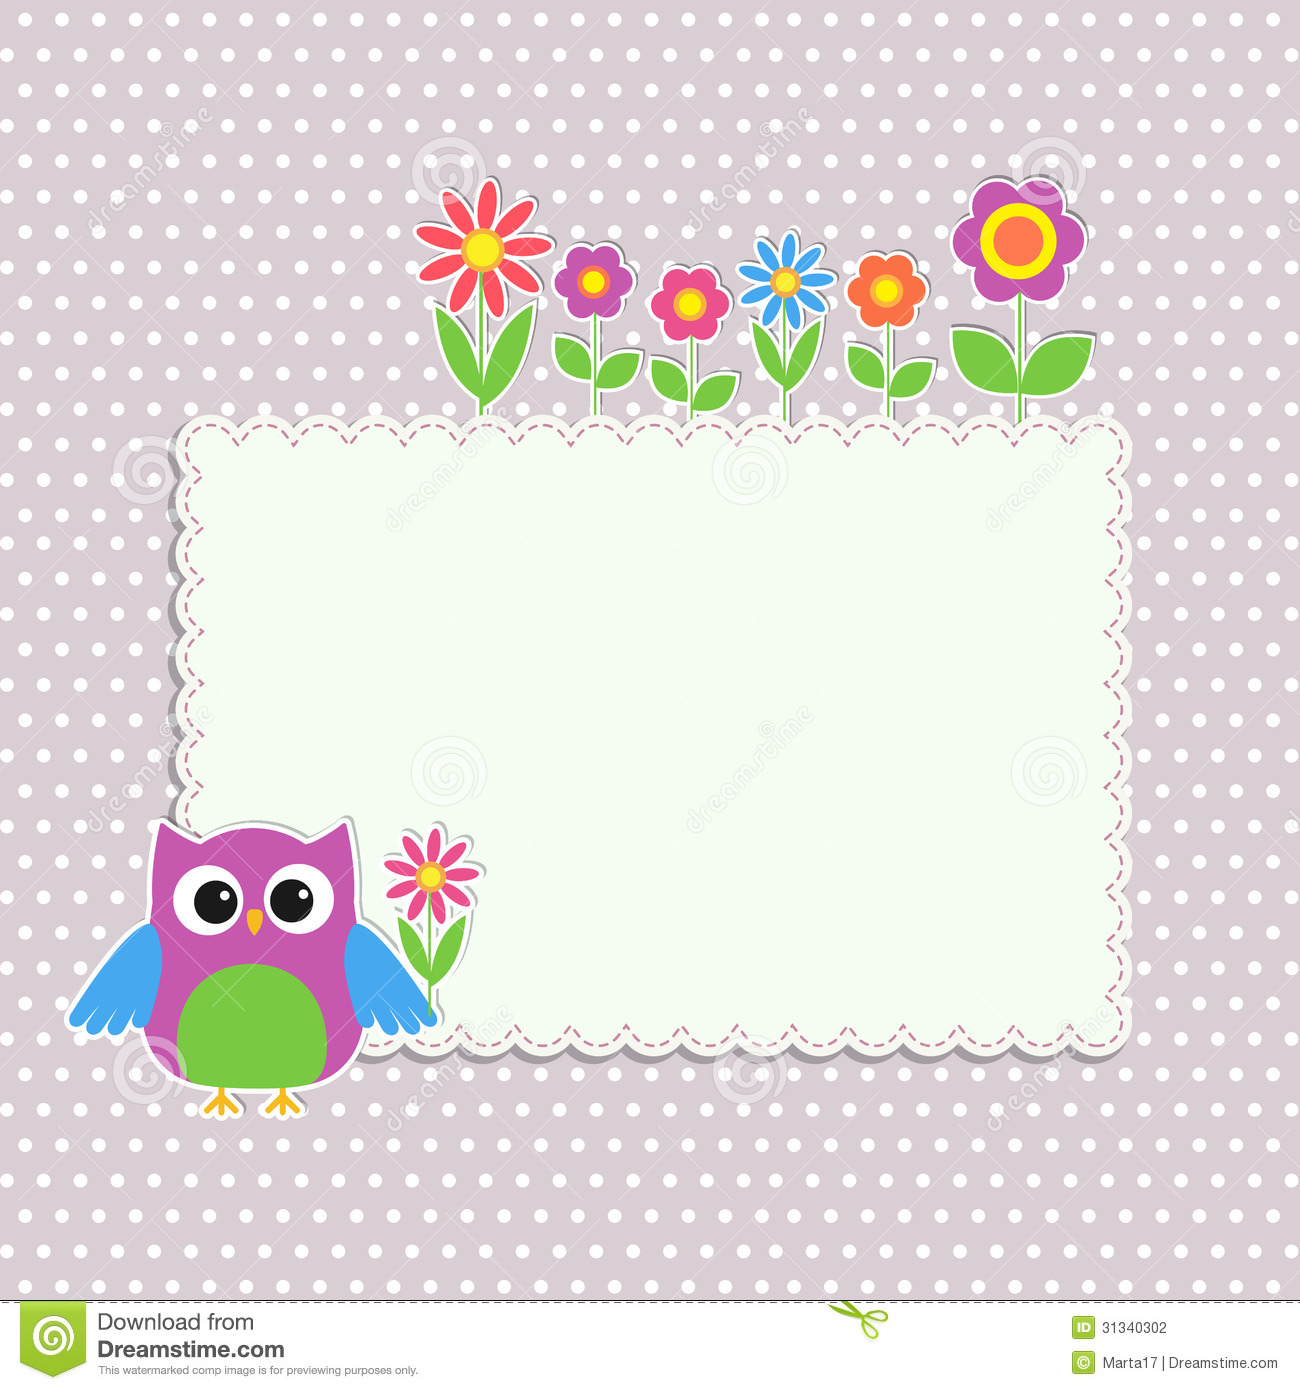 Frame With Cute Owl Stock Vector Illustration Of Ornament